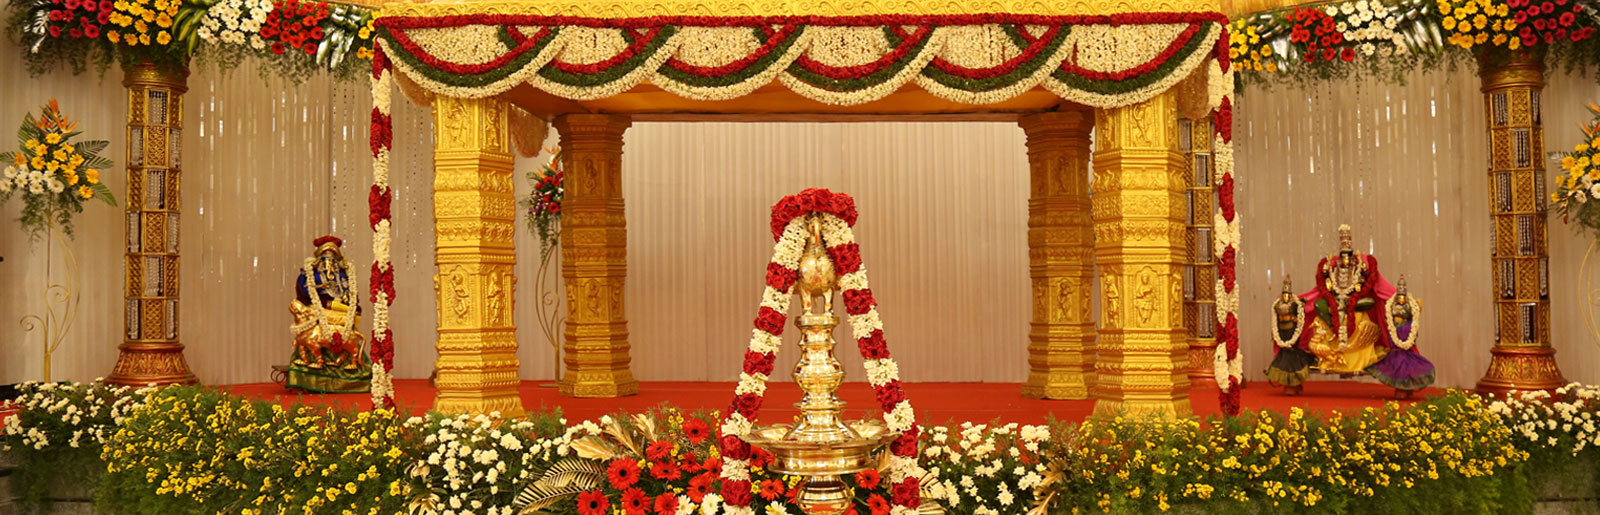 Impressive-Decorative-Marriage-Hall